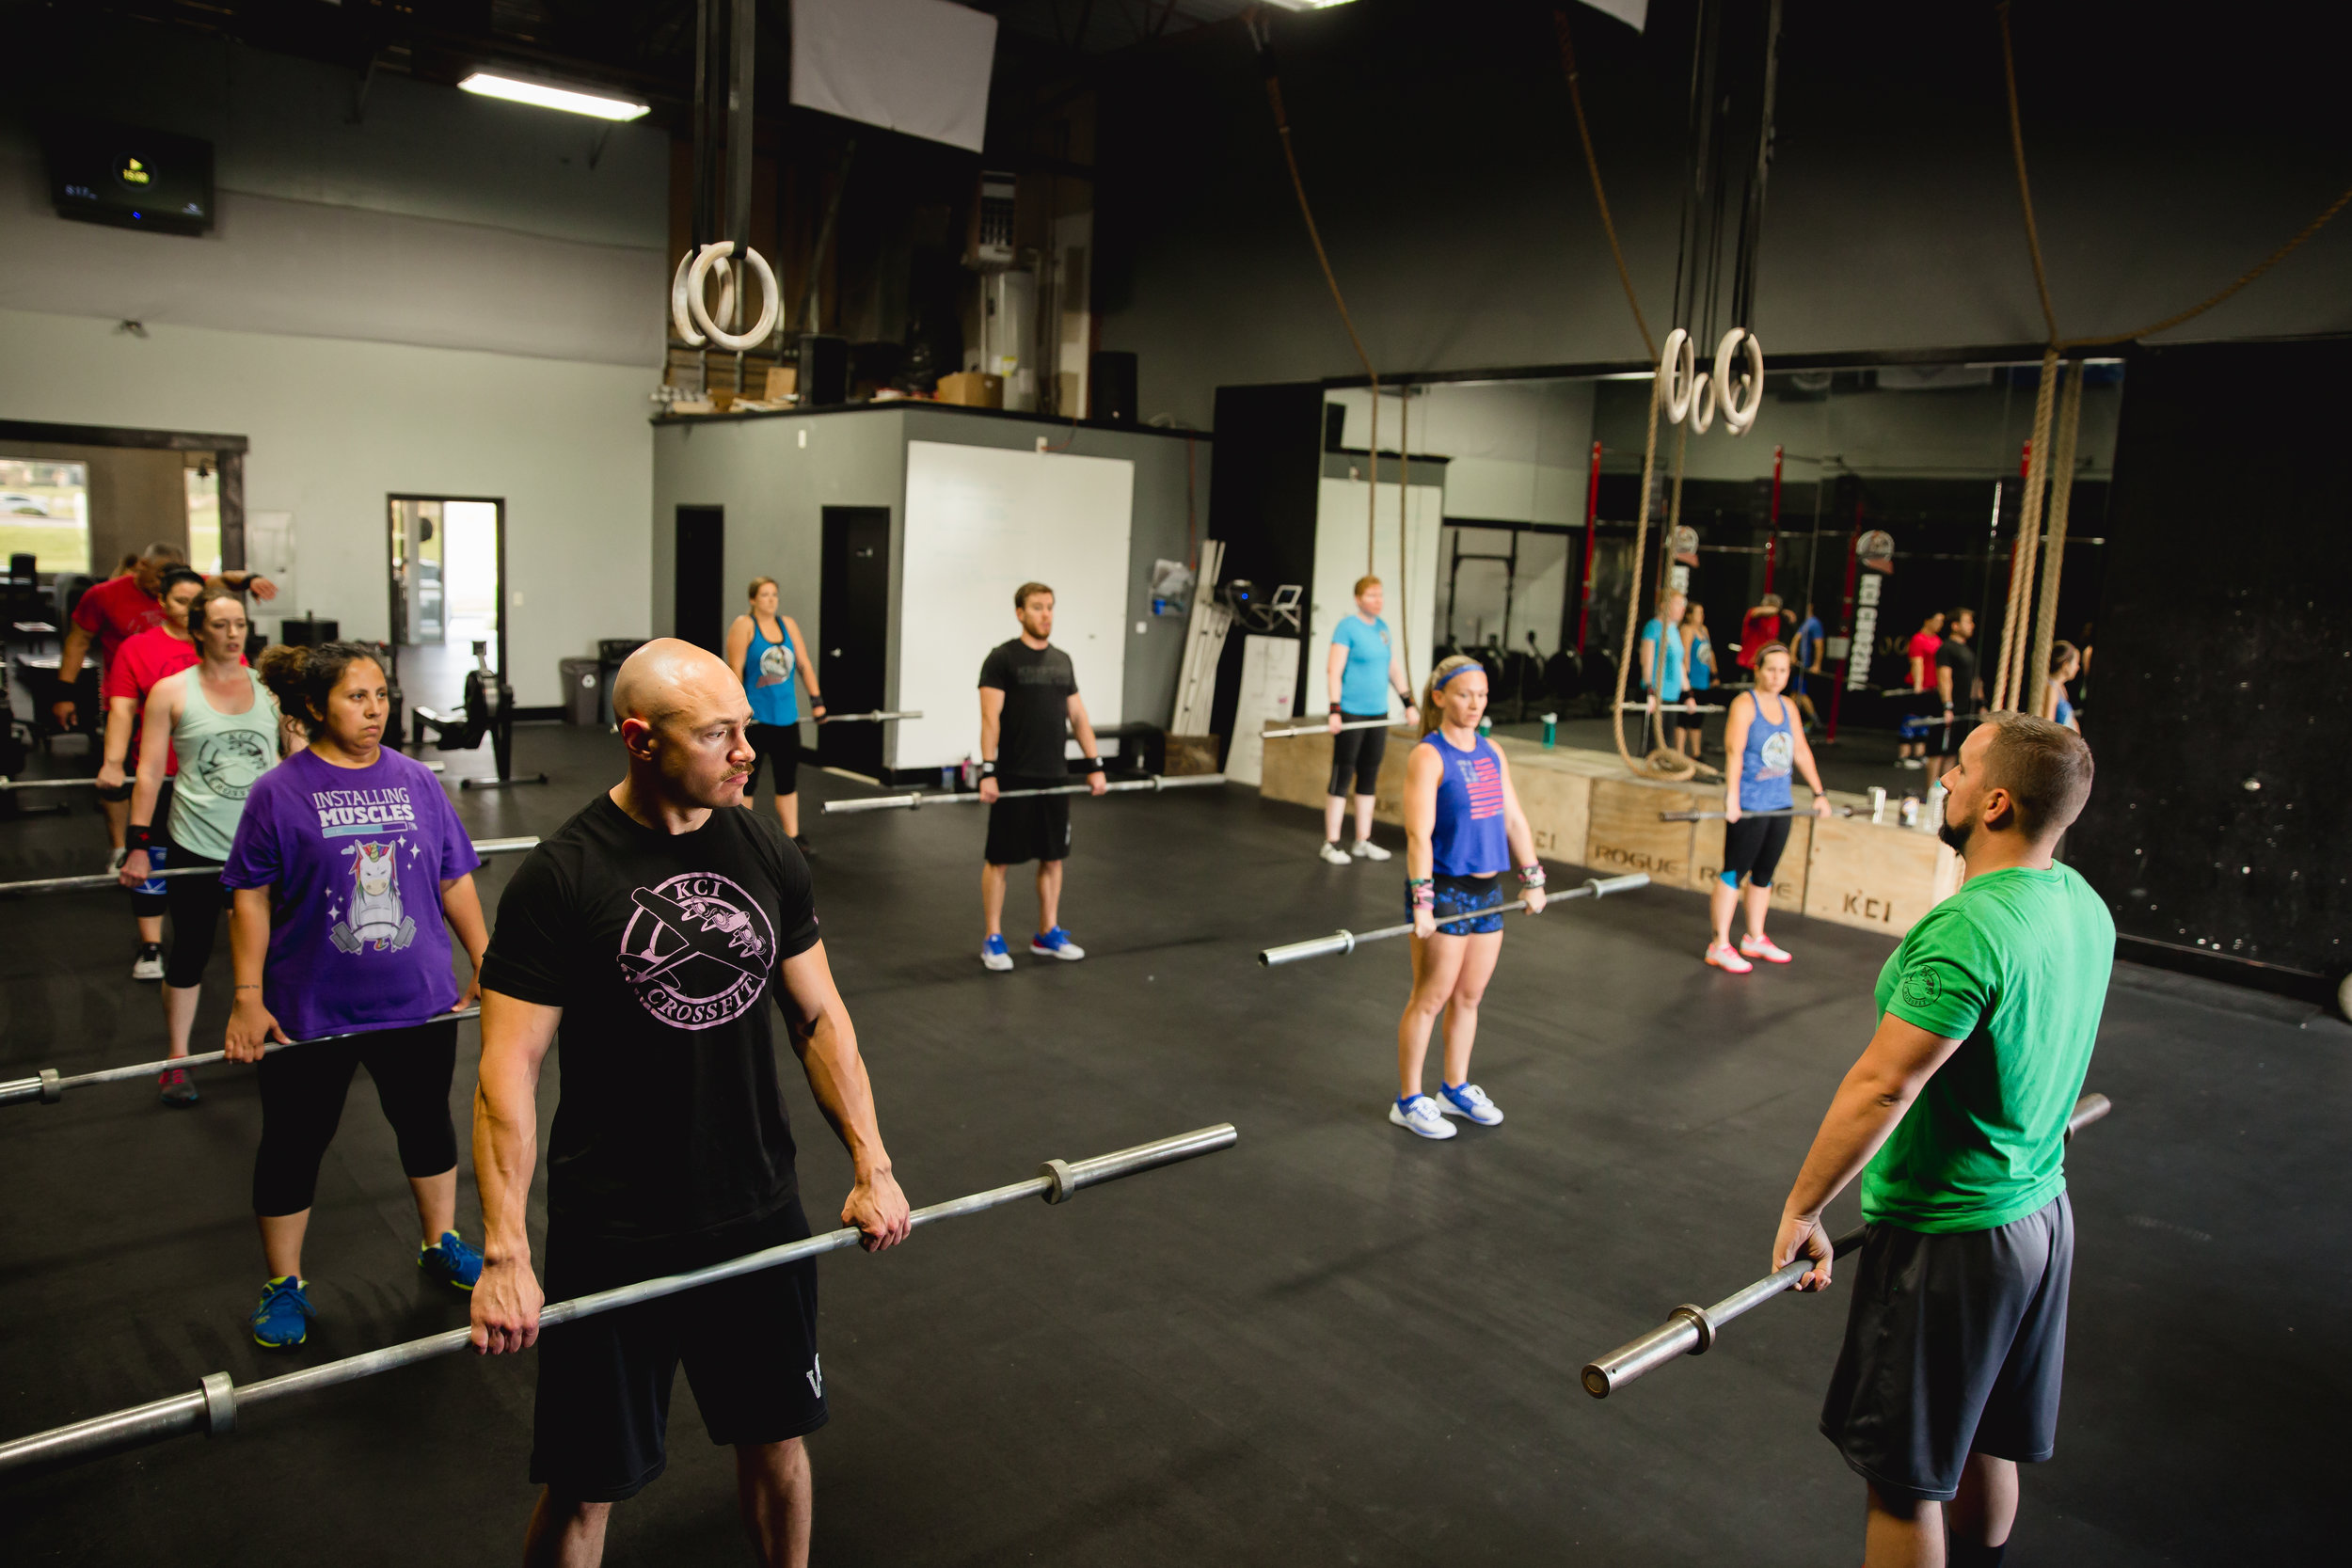 CrossFit gym coach in Kansas City teaching safe barbell movement.